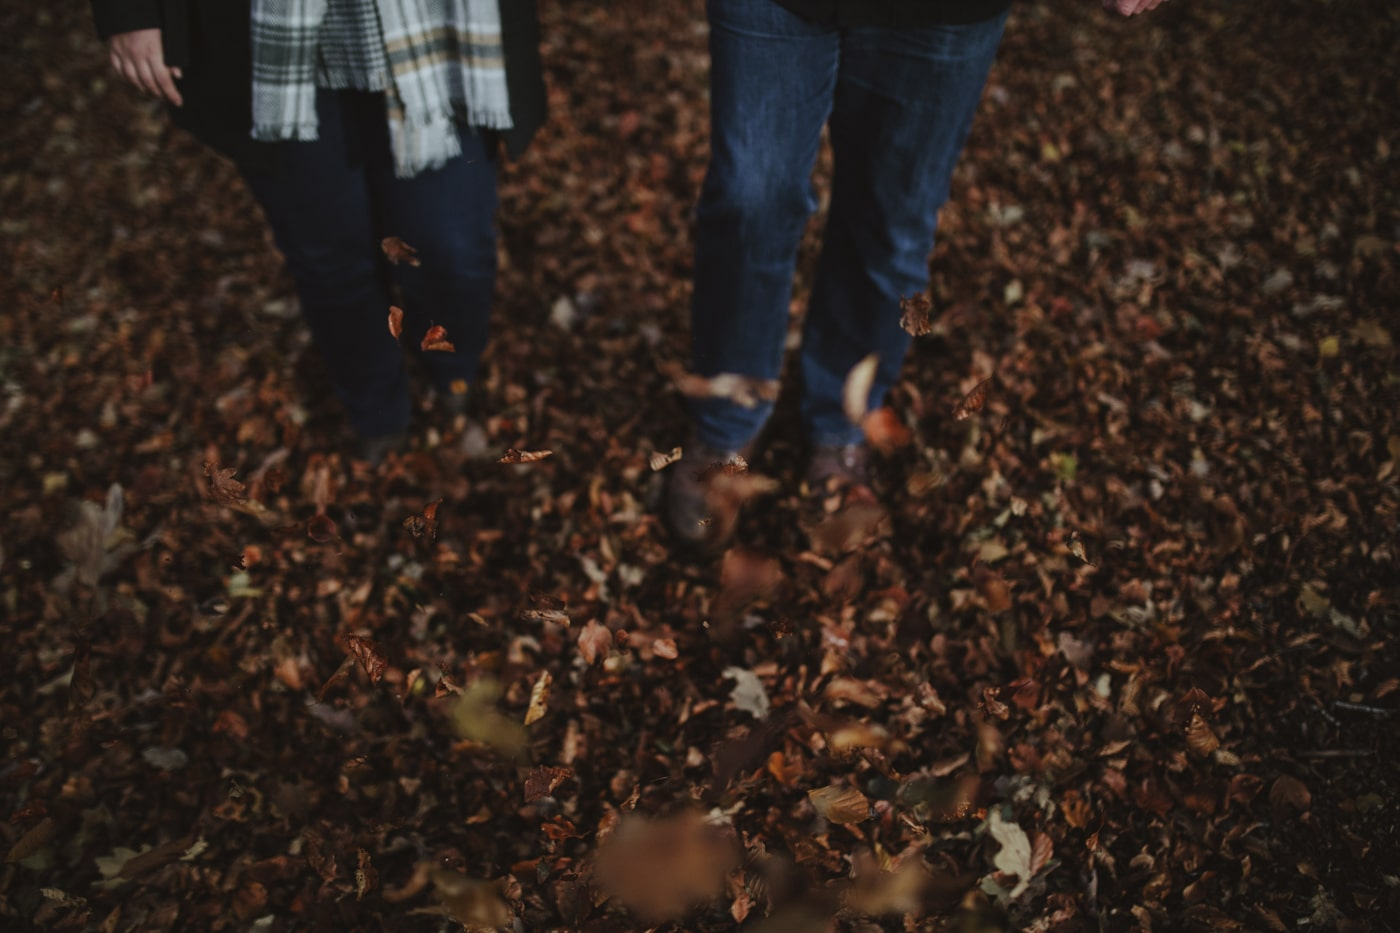 Standing in the brown leaves in autumn by Joshua Wyborn Photographic